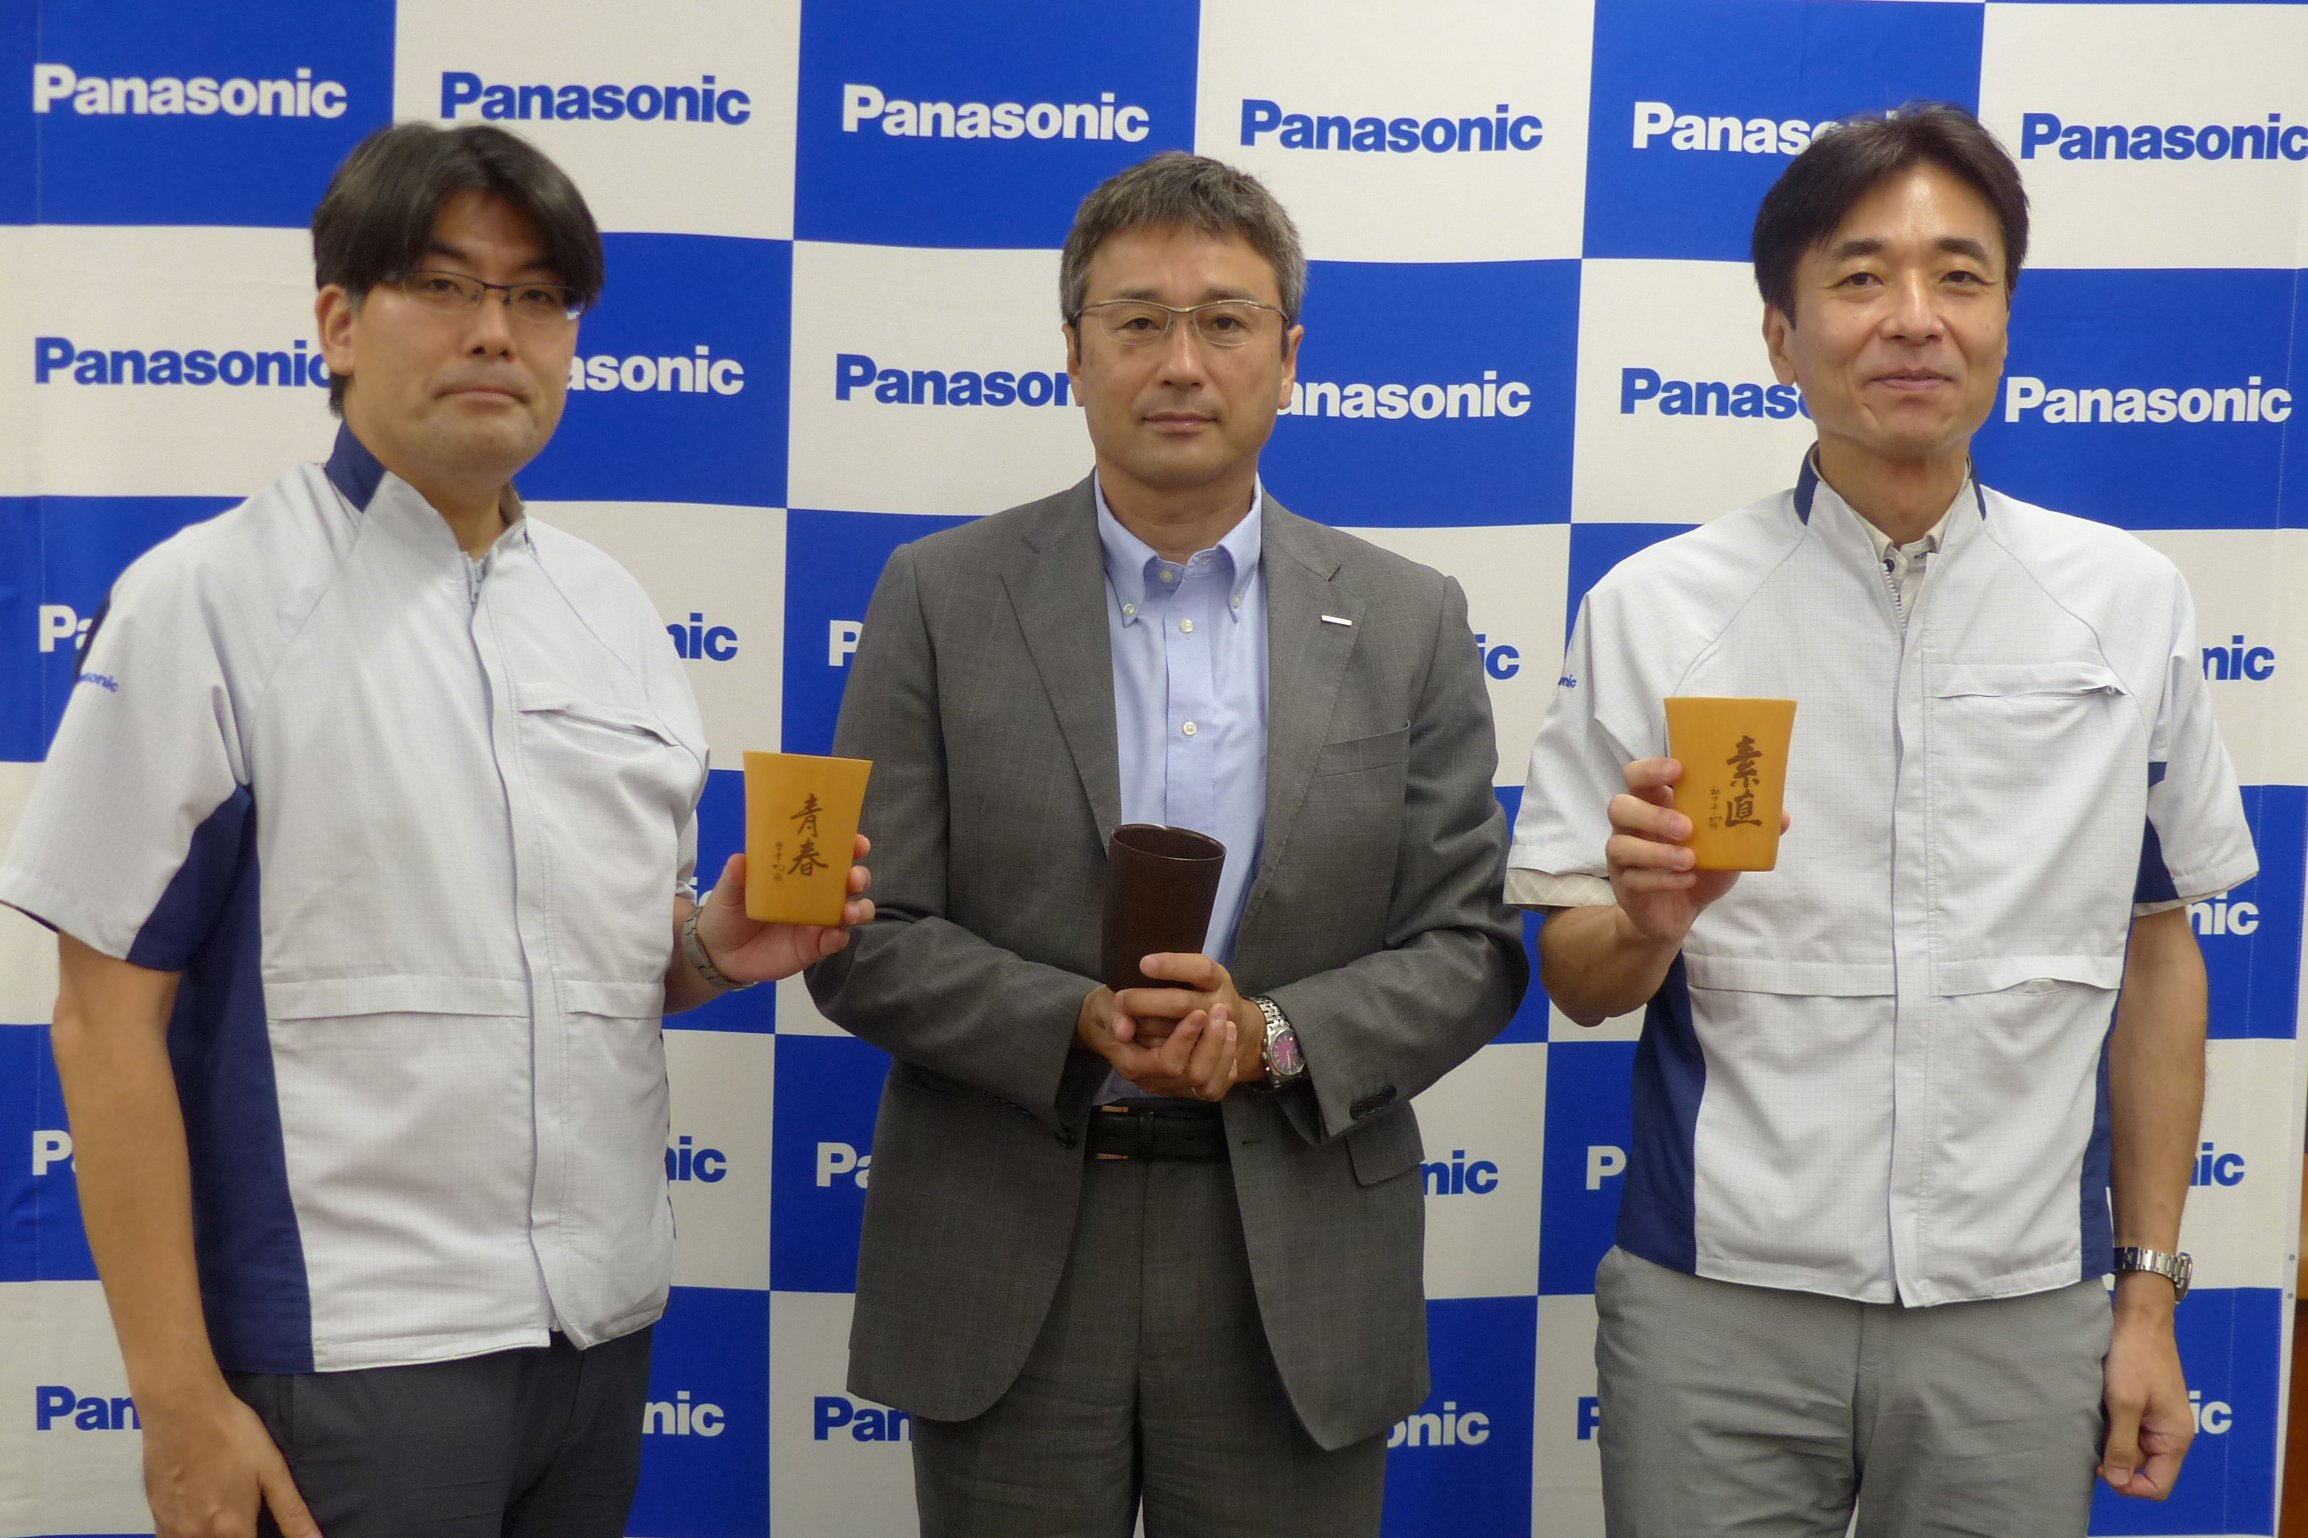 Photo: Cellulose fiber molding material development team (Photo center: Panasonic Corporation Manufacturing Innovation Division, General Manager, Hideo Ohara. Photo left: Same division, Production Engineering and Green Technology Laboratory, Chief Engineer, Toshifumi Nagino. Photo right: Same division, Mold & Die Technology Center, Manager, Tsuyoshi Kiritohshi)